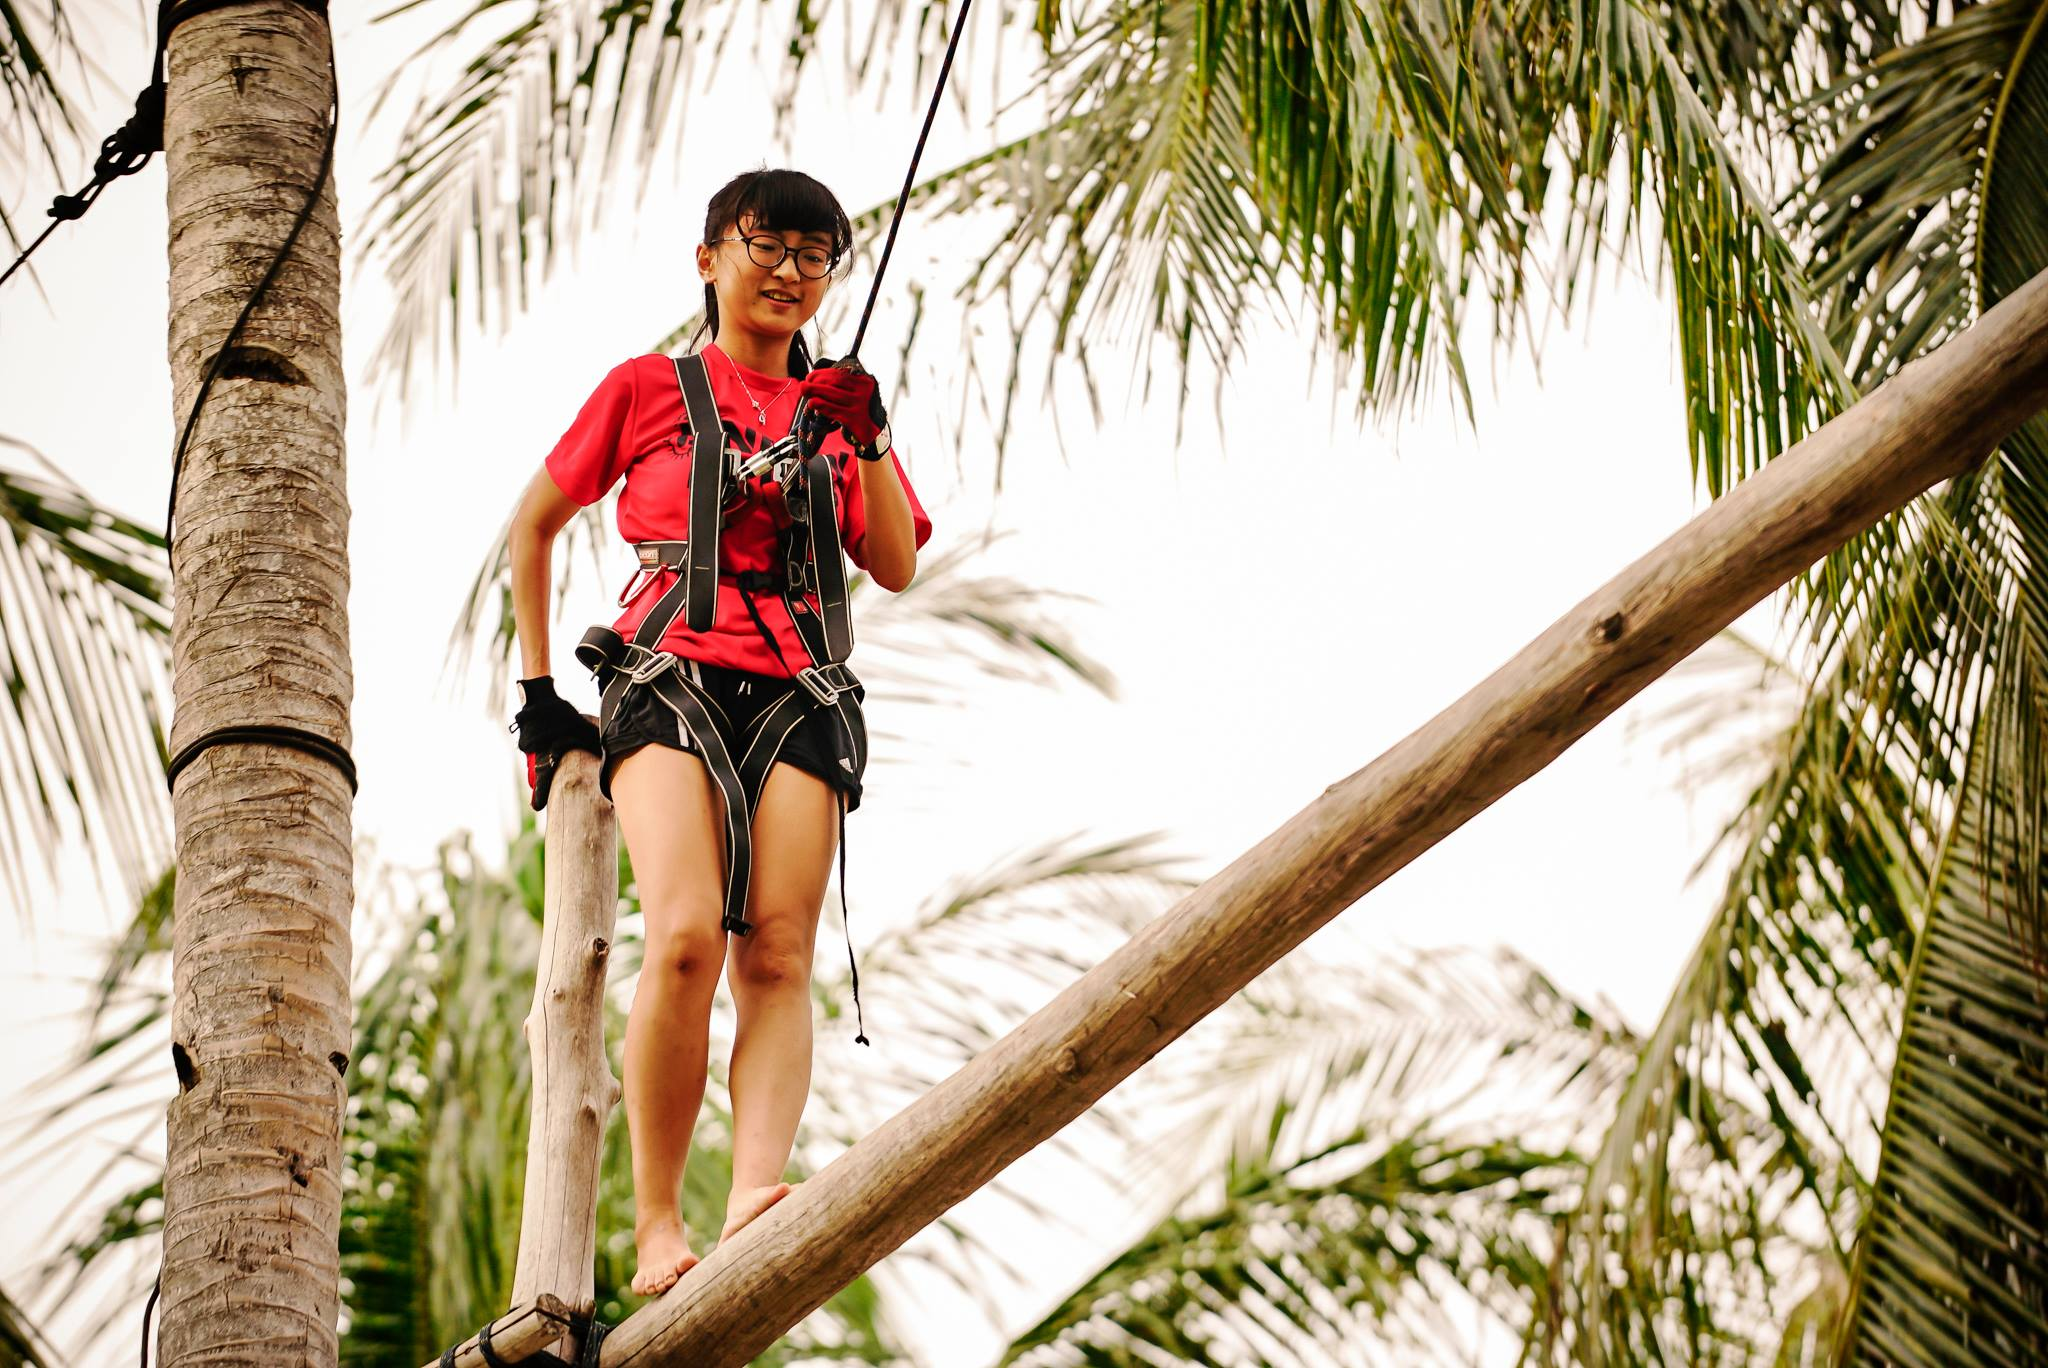 high adventure camp essay 03/18/10 florida national high adventure sea base  ______ i have  enclosed a one-page essay on what i have learned from camping and outdoor.